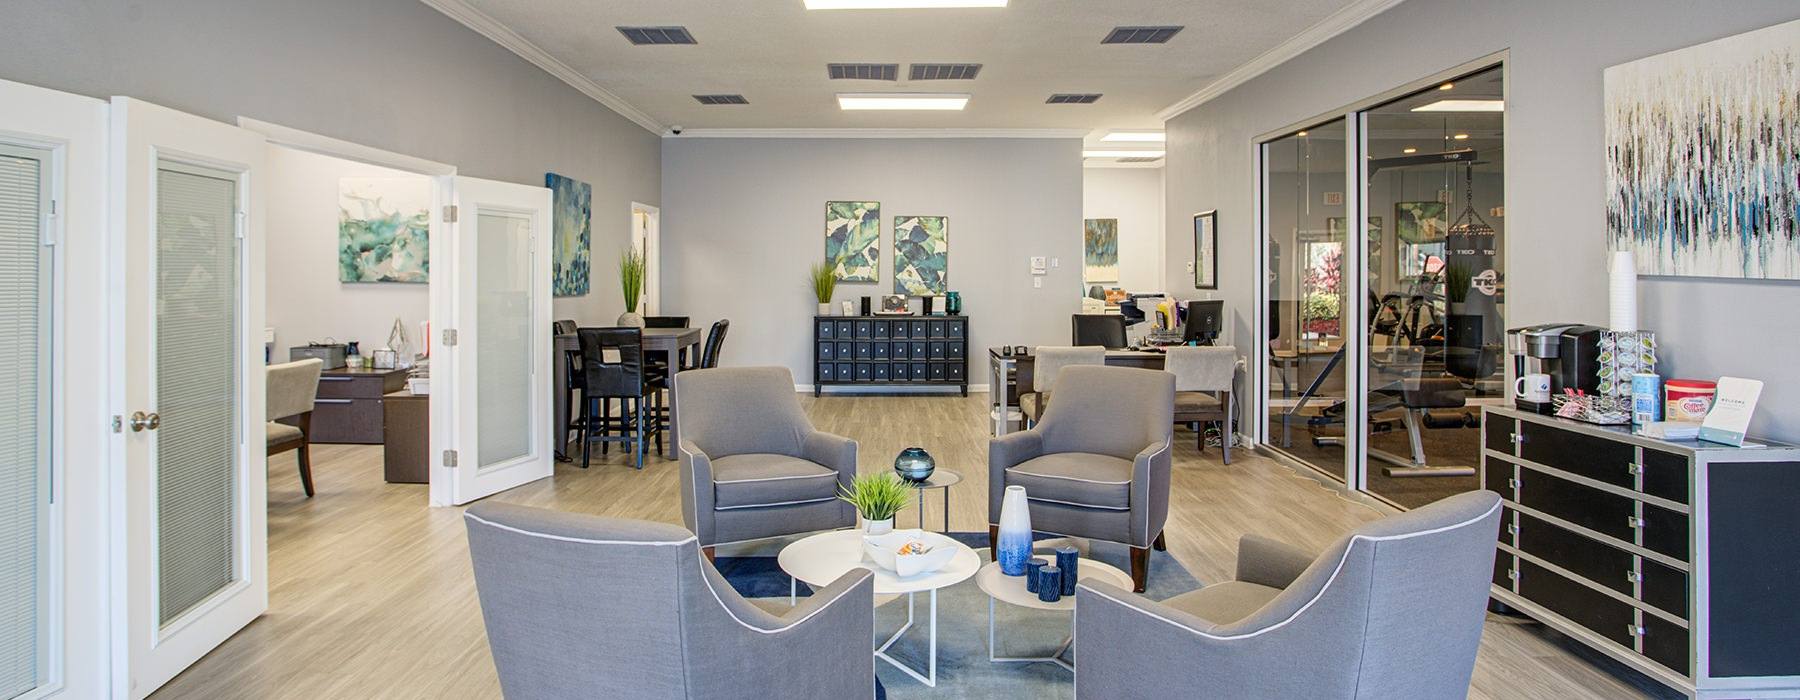 open Resident lounge - Royal Isles Apartments in Orlando